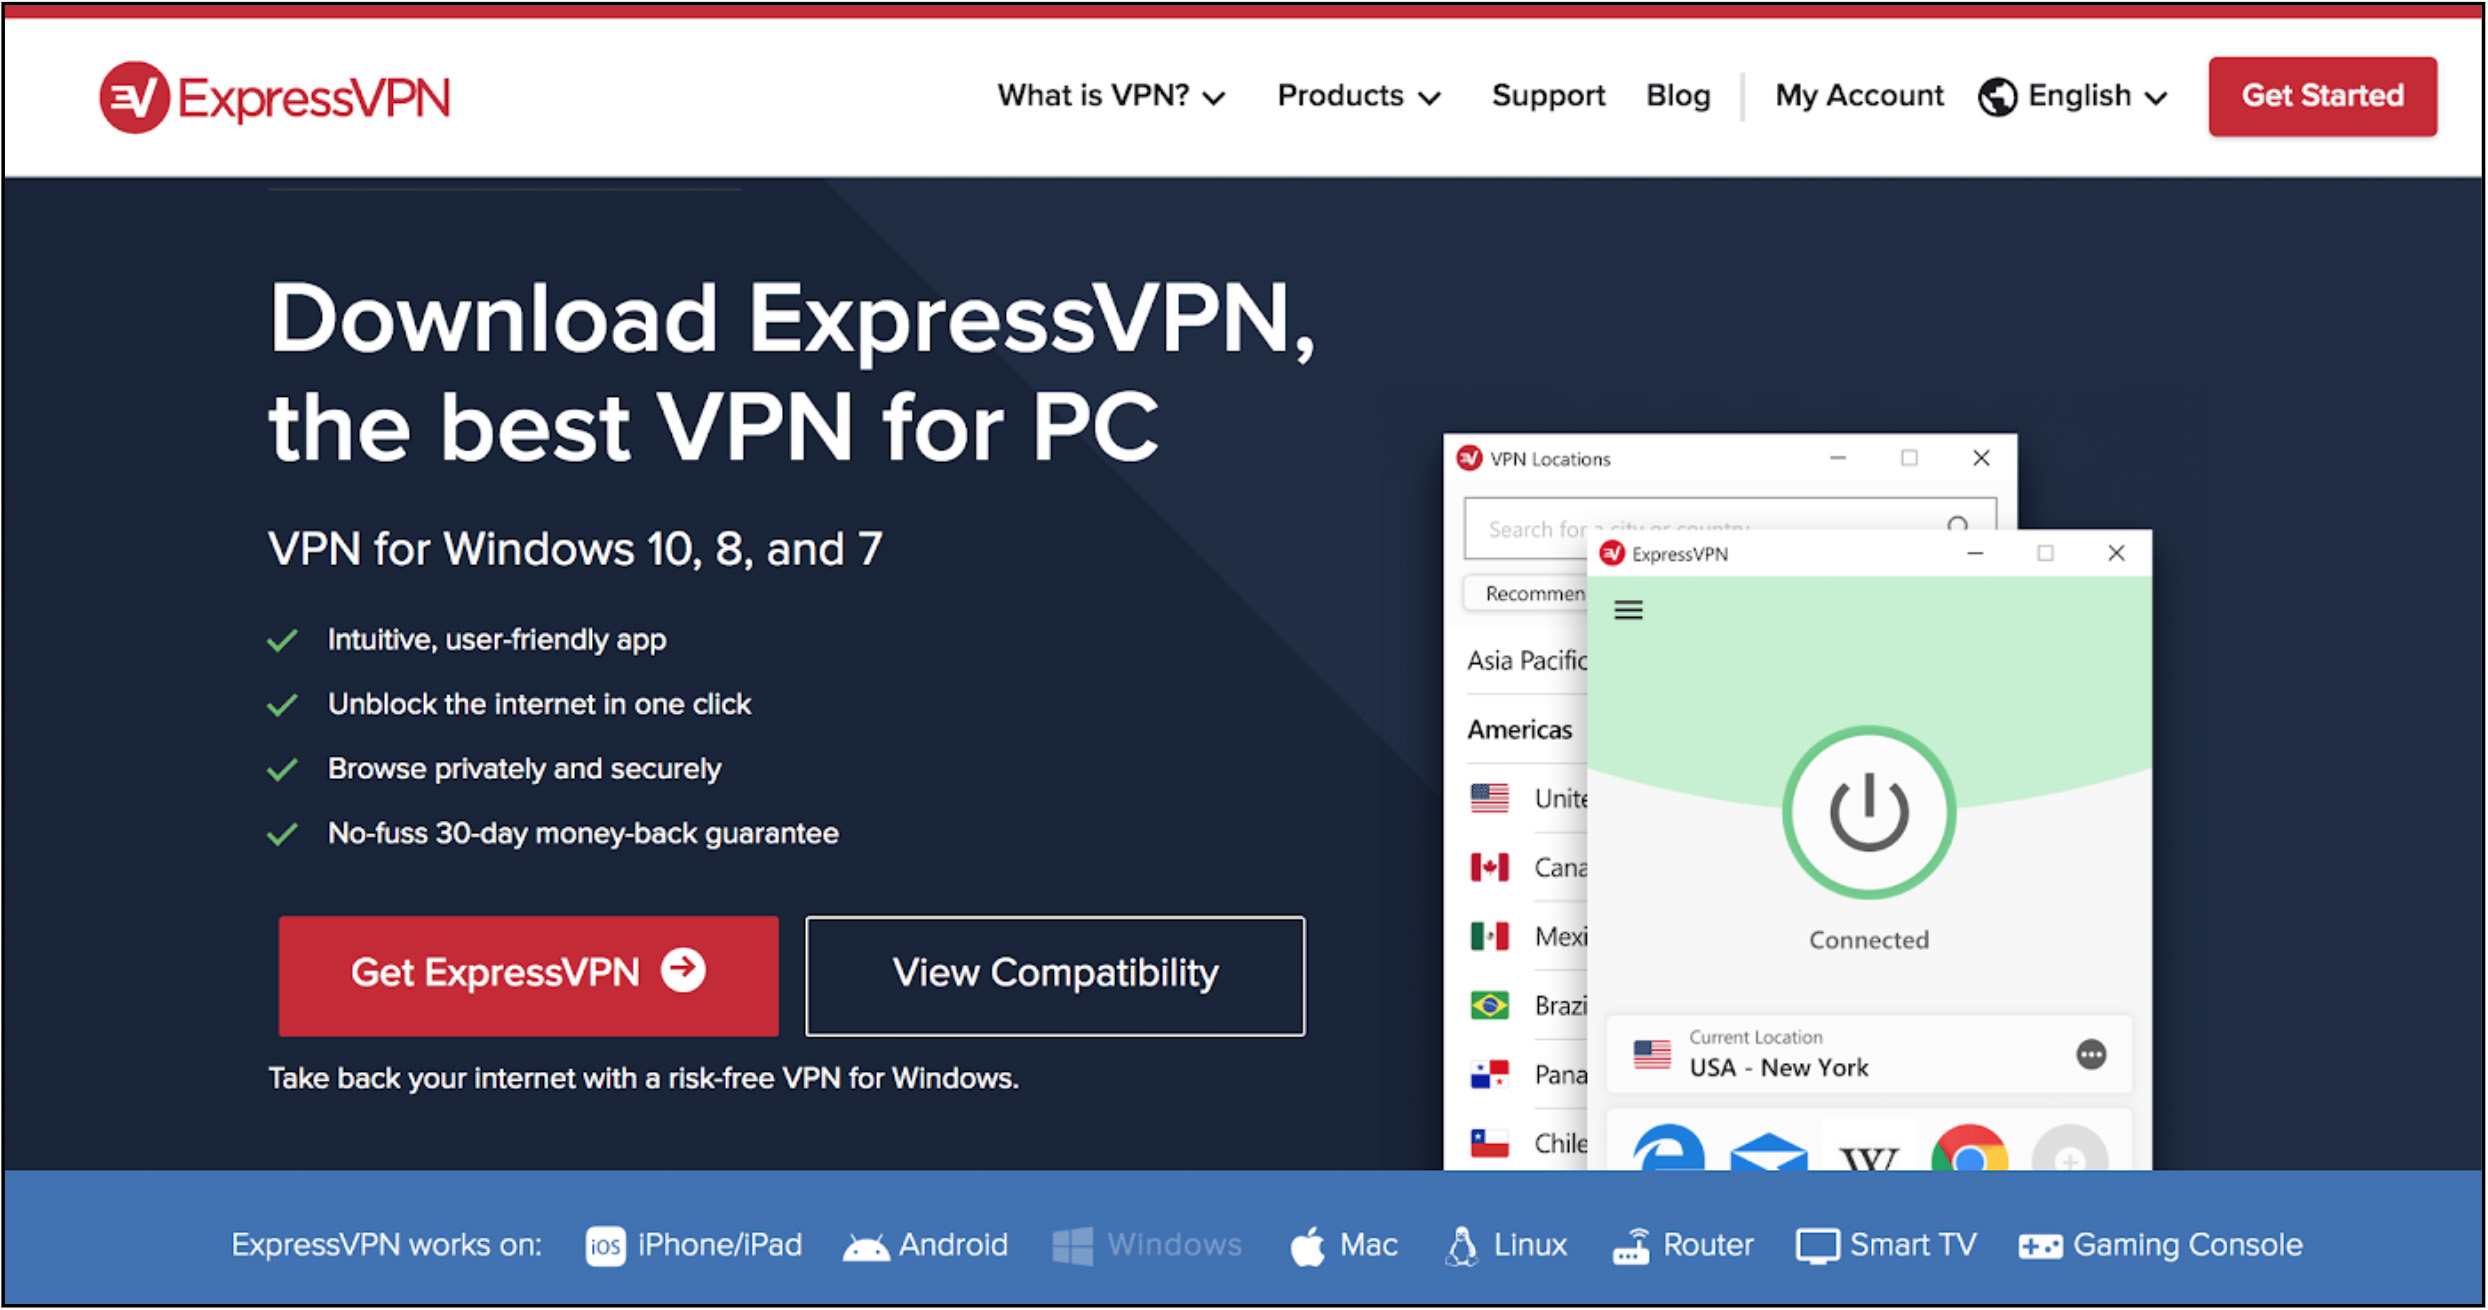 Screenshot of ExpressVPN's vendor welcome page for its Windows VPN service with product information and purchasing links.